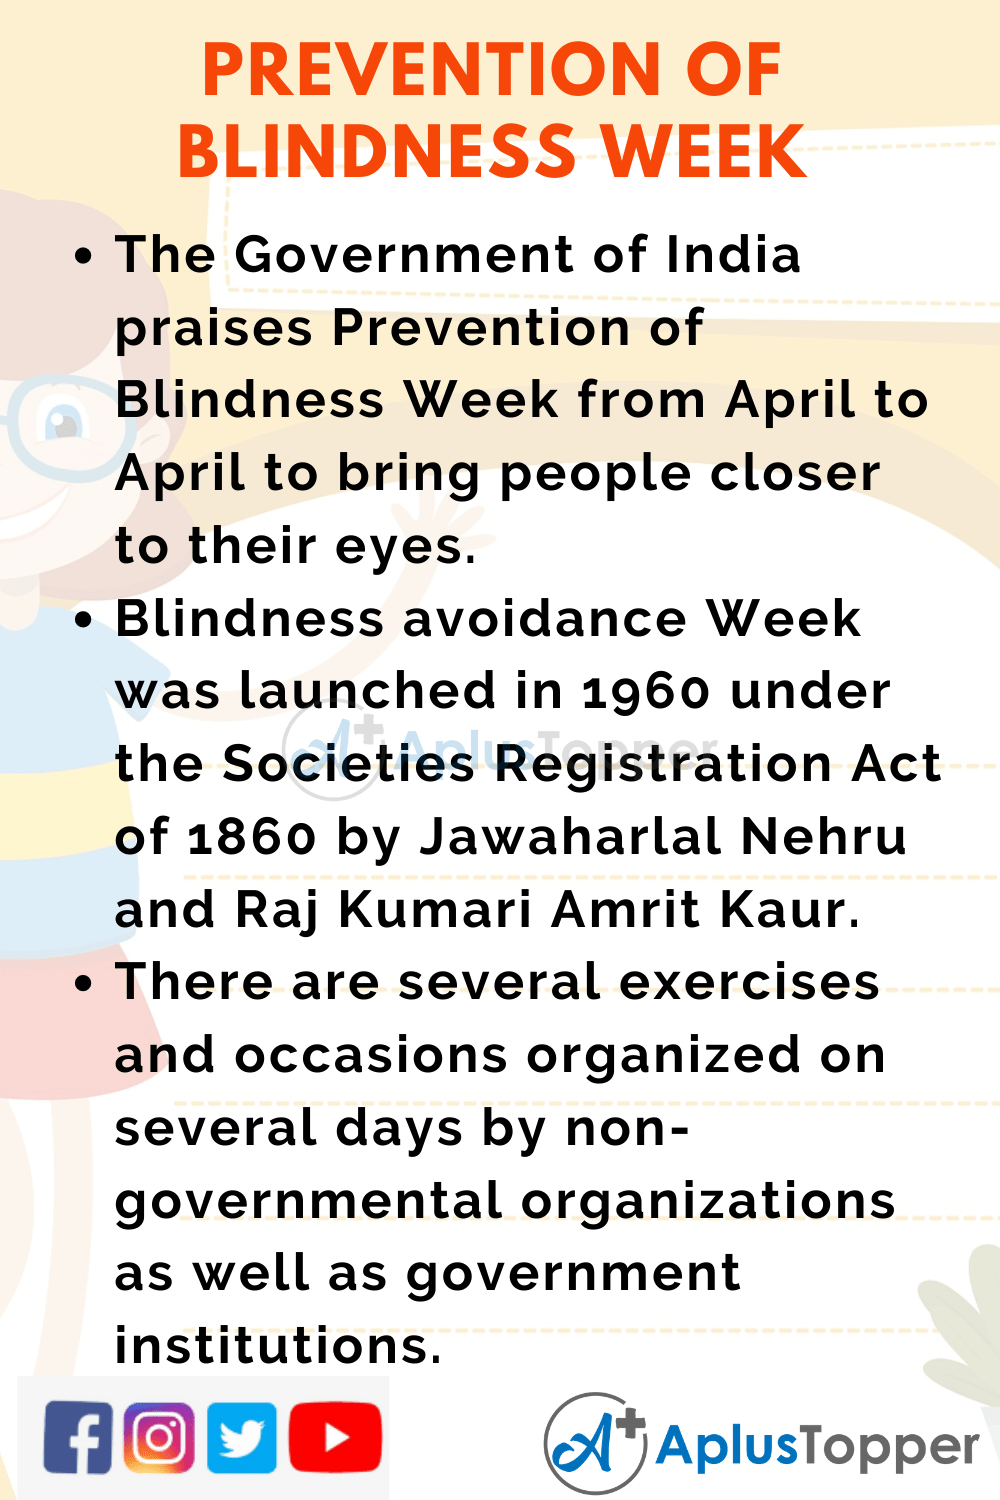 10 lines about Prevention of Blindness Week